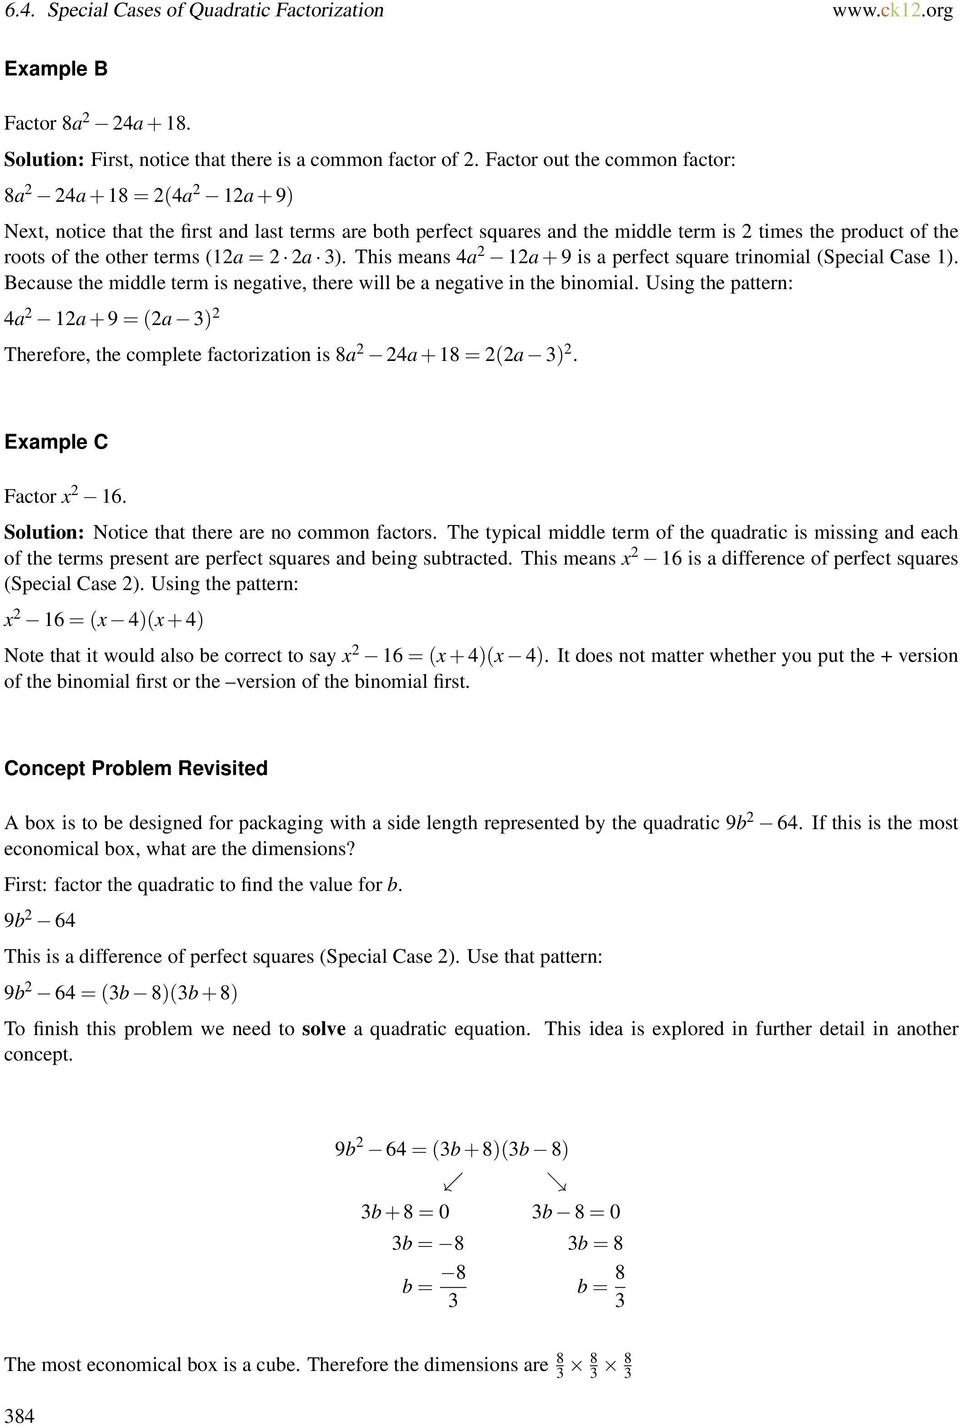 Veterans upward bound algebra i concepts honors pdf terms 12a 2 2a 3 this means 4a 2 12a 9 ibookread ePUb